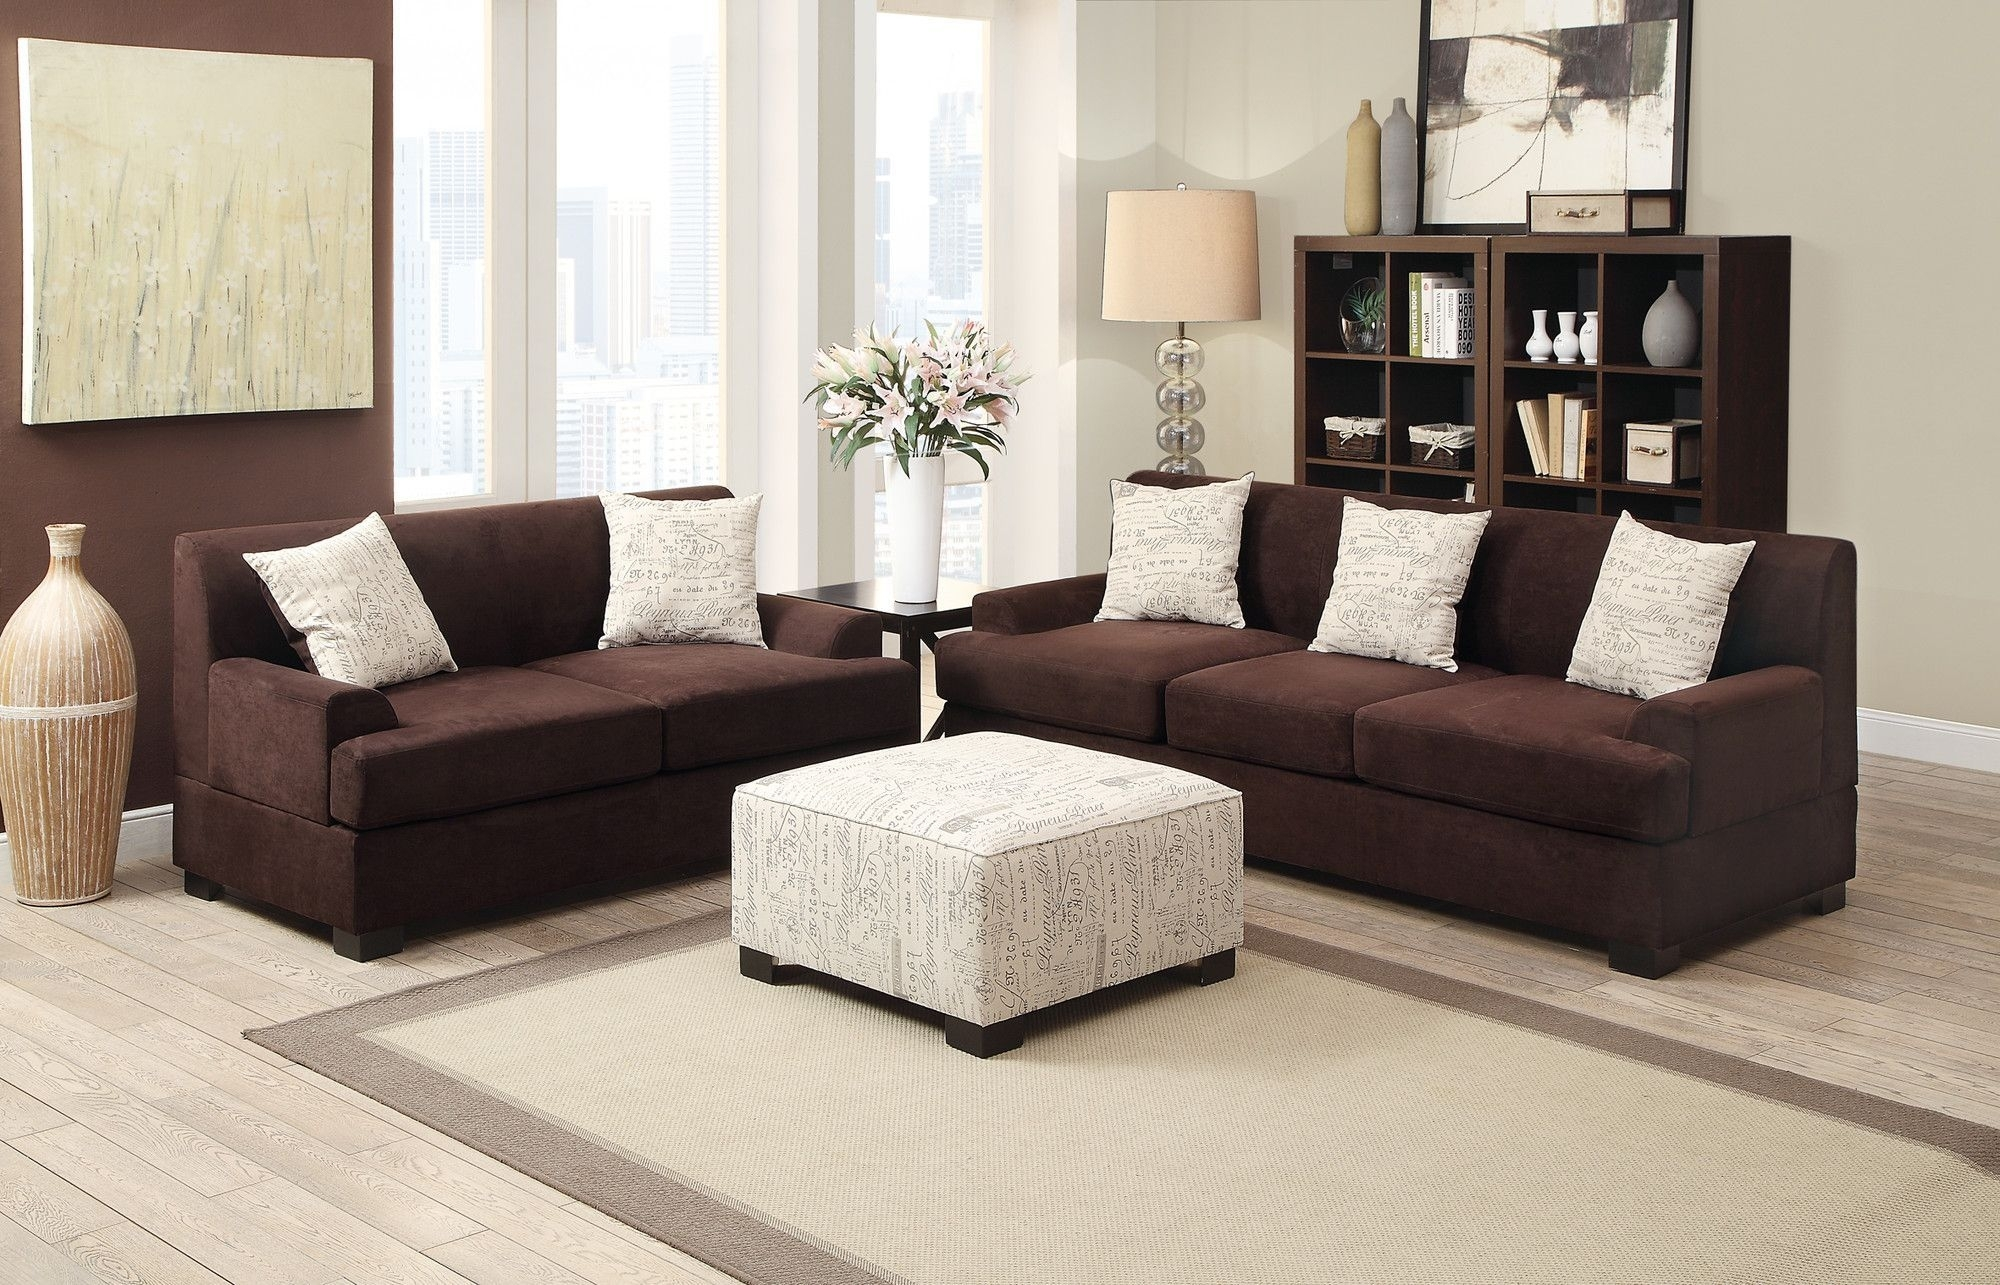 Bobkona Barrie Sofa And Loveseat Set | Products | Pinterest | Products with regard to Sectional Sofas at Barrie (Image 4 of 15)